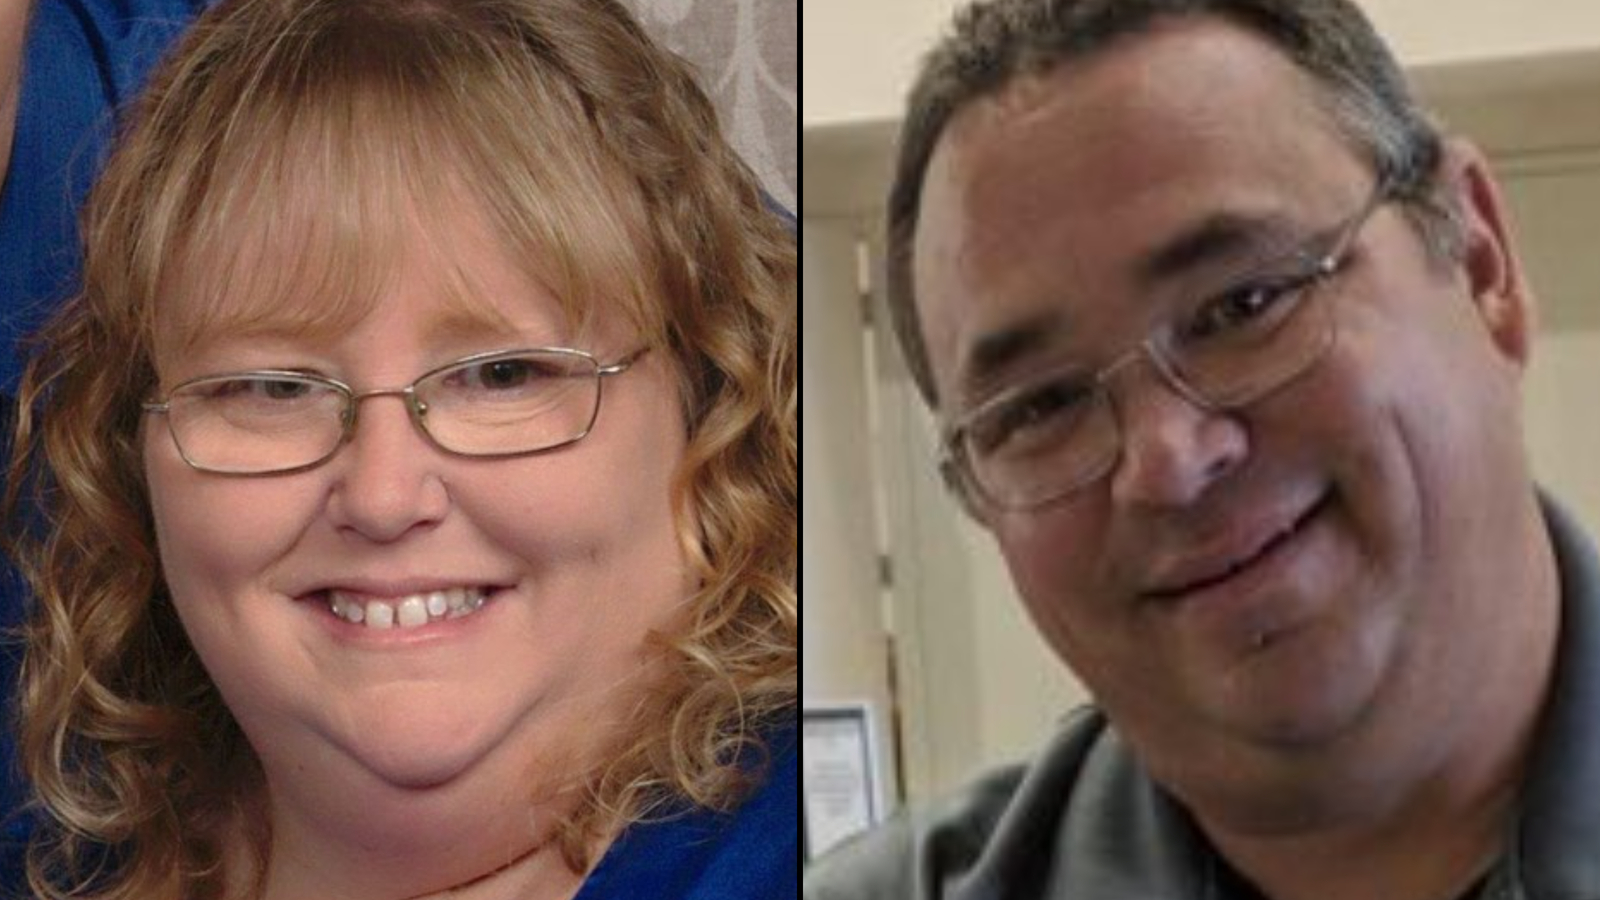 A teacher's aide who worked with special needs students, and her brother, a paramedic, died from coronavirus just one day apart